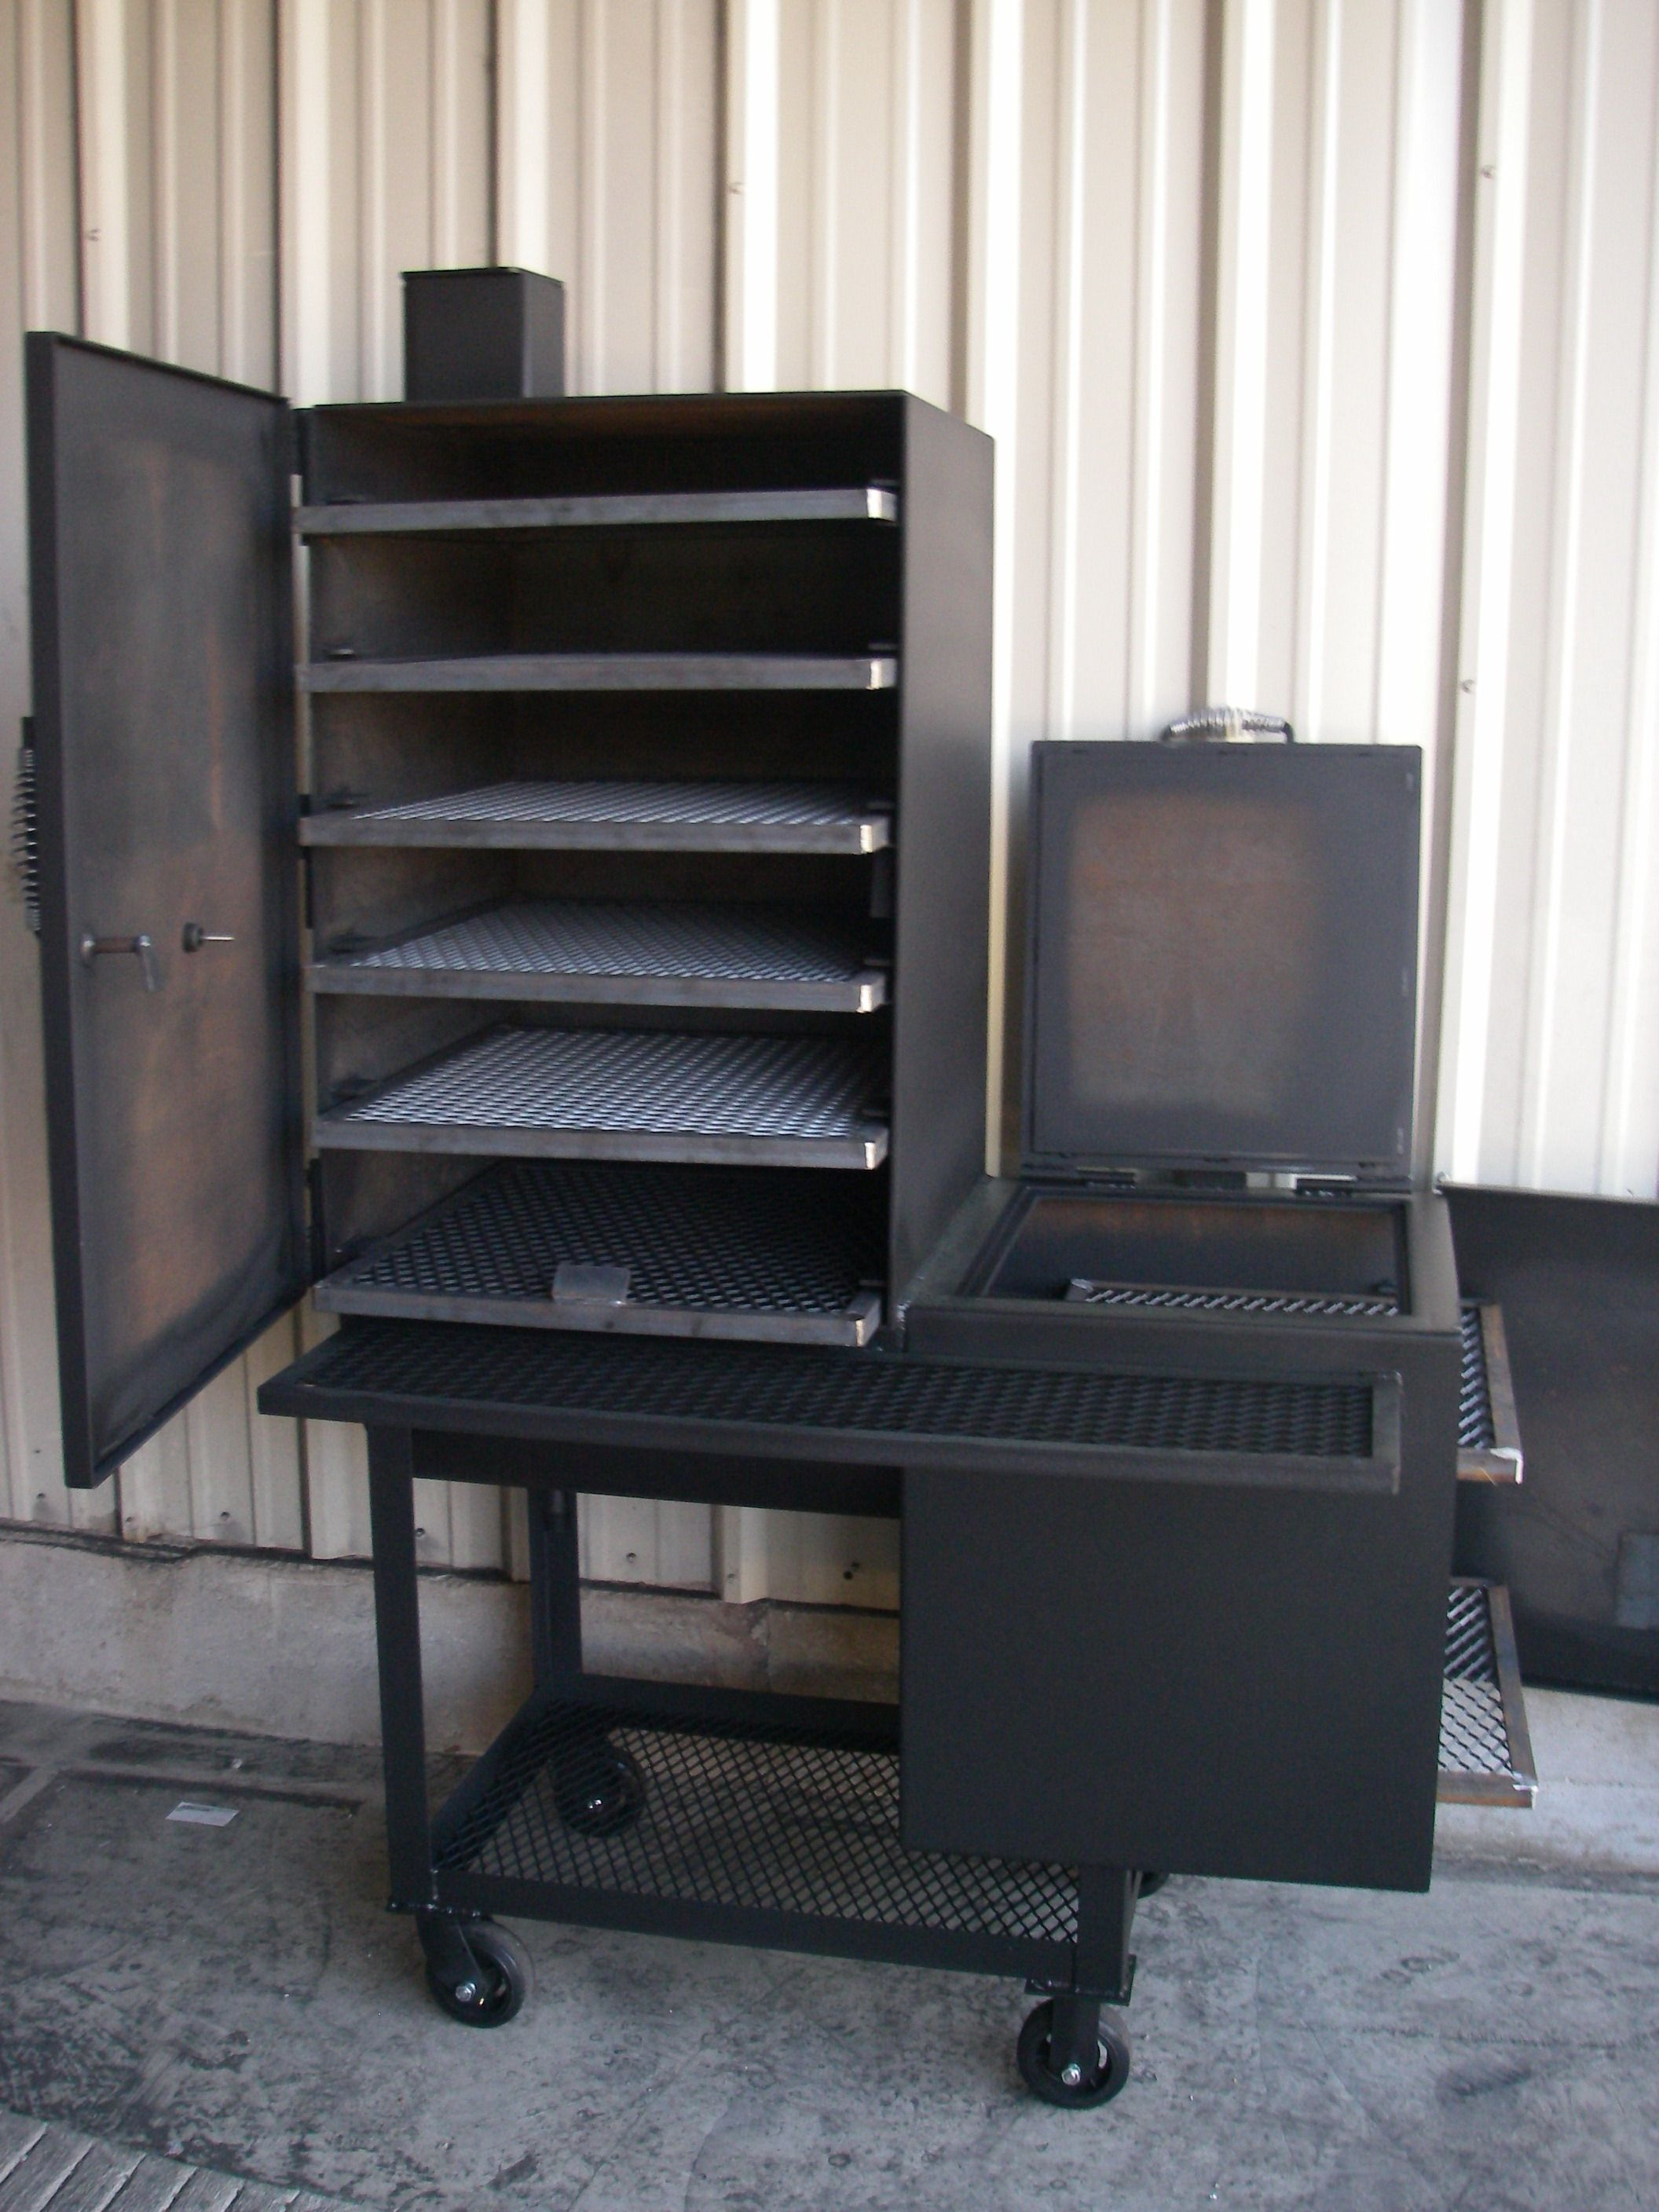 From 1500 Vertical Smokers My Next Cooker Pinterest